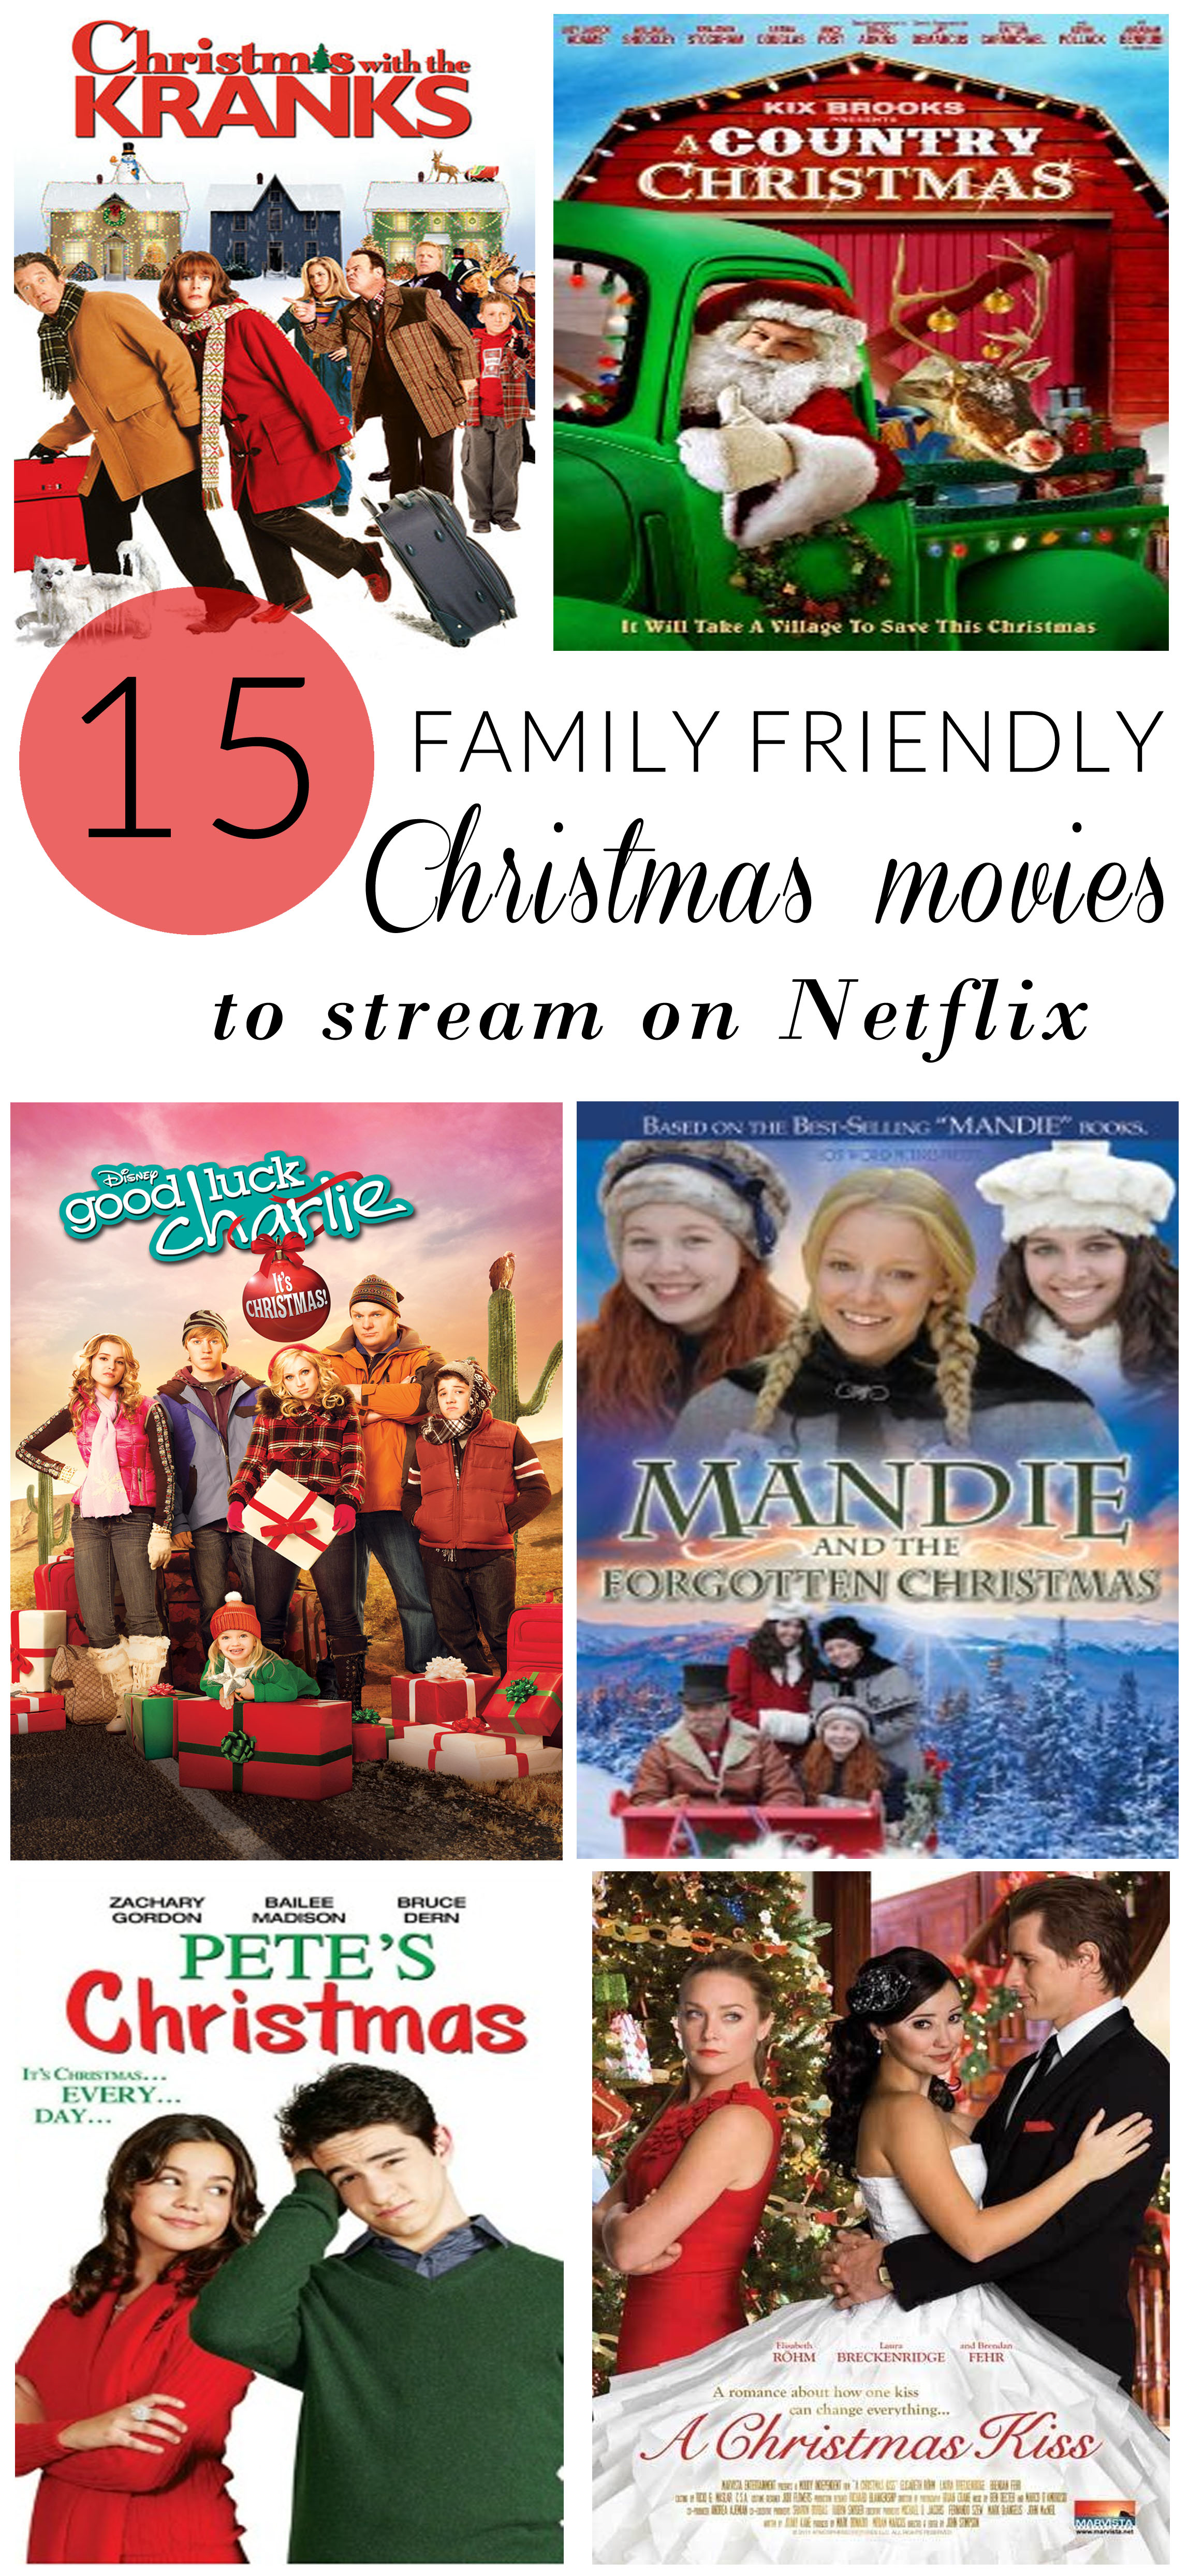 15 Family Friendly Christmas Movies to Stream on Netflix